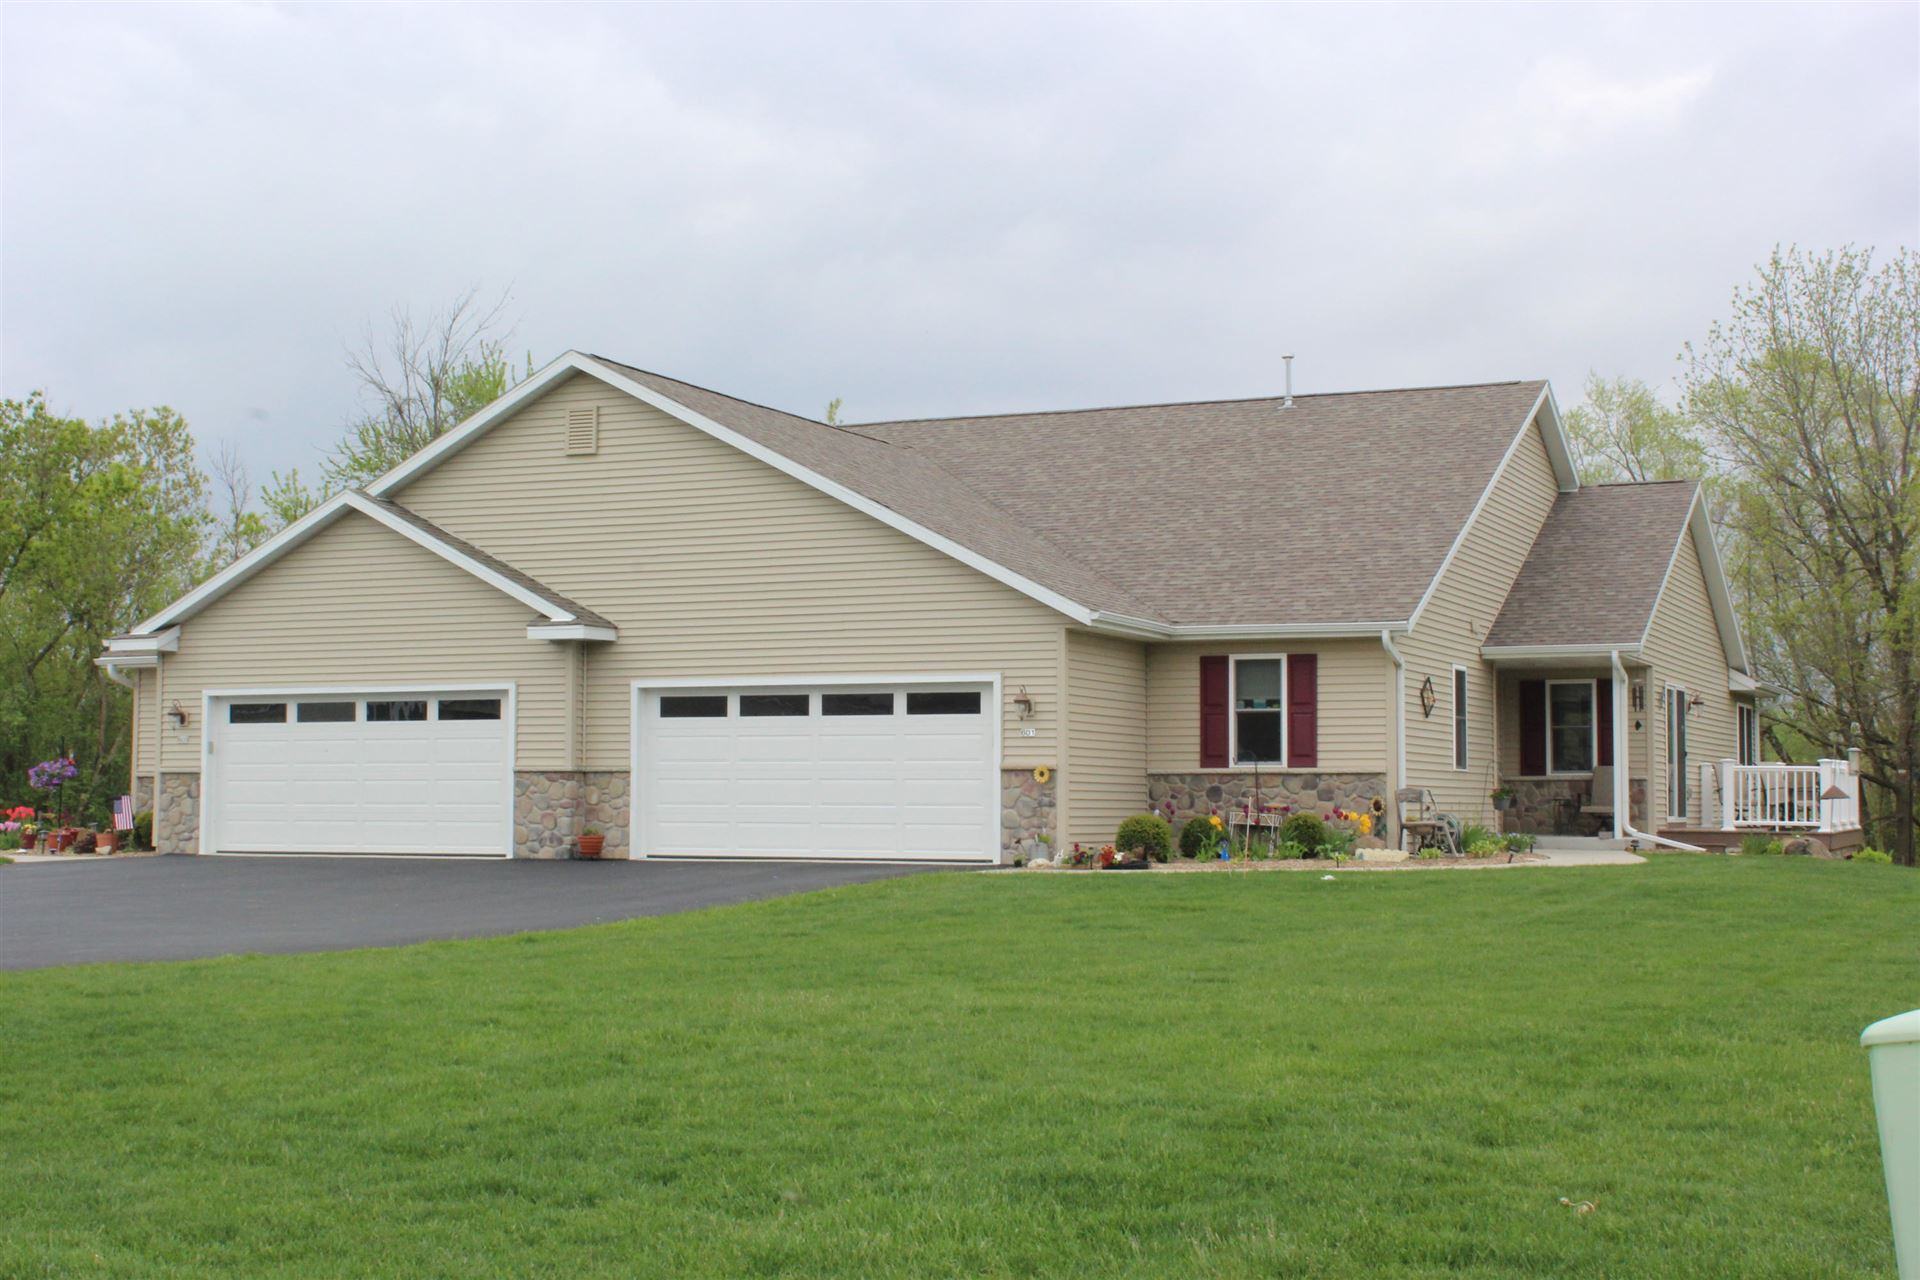 415 Trailview Crossing, Waterford, WI 53185 - #: 1690231